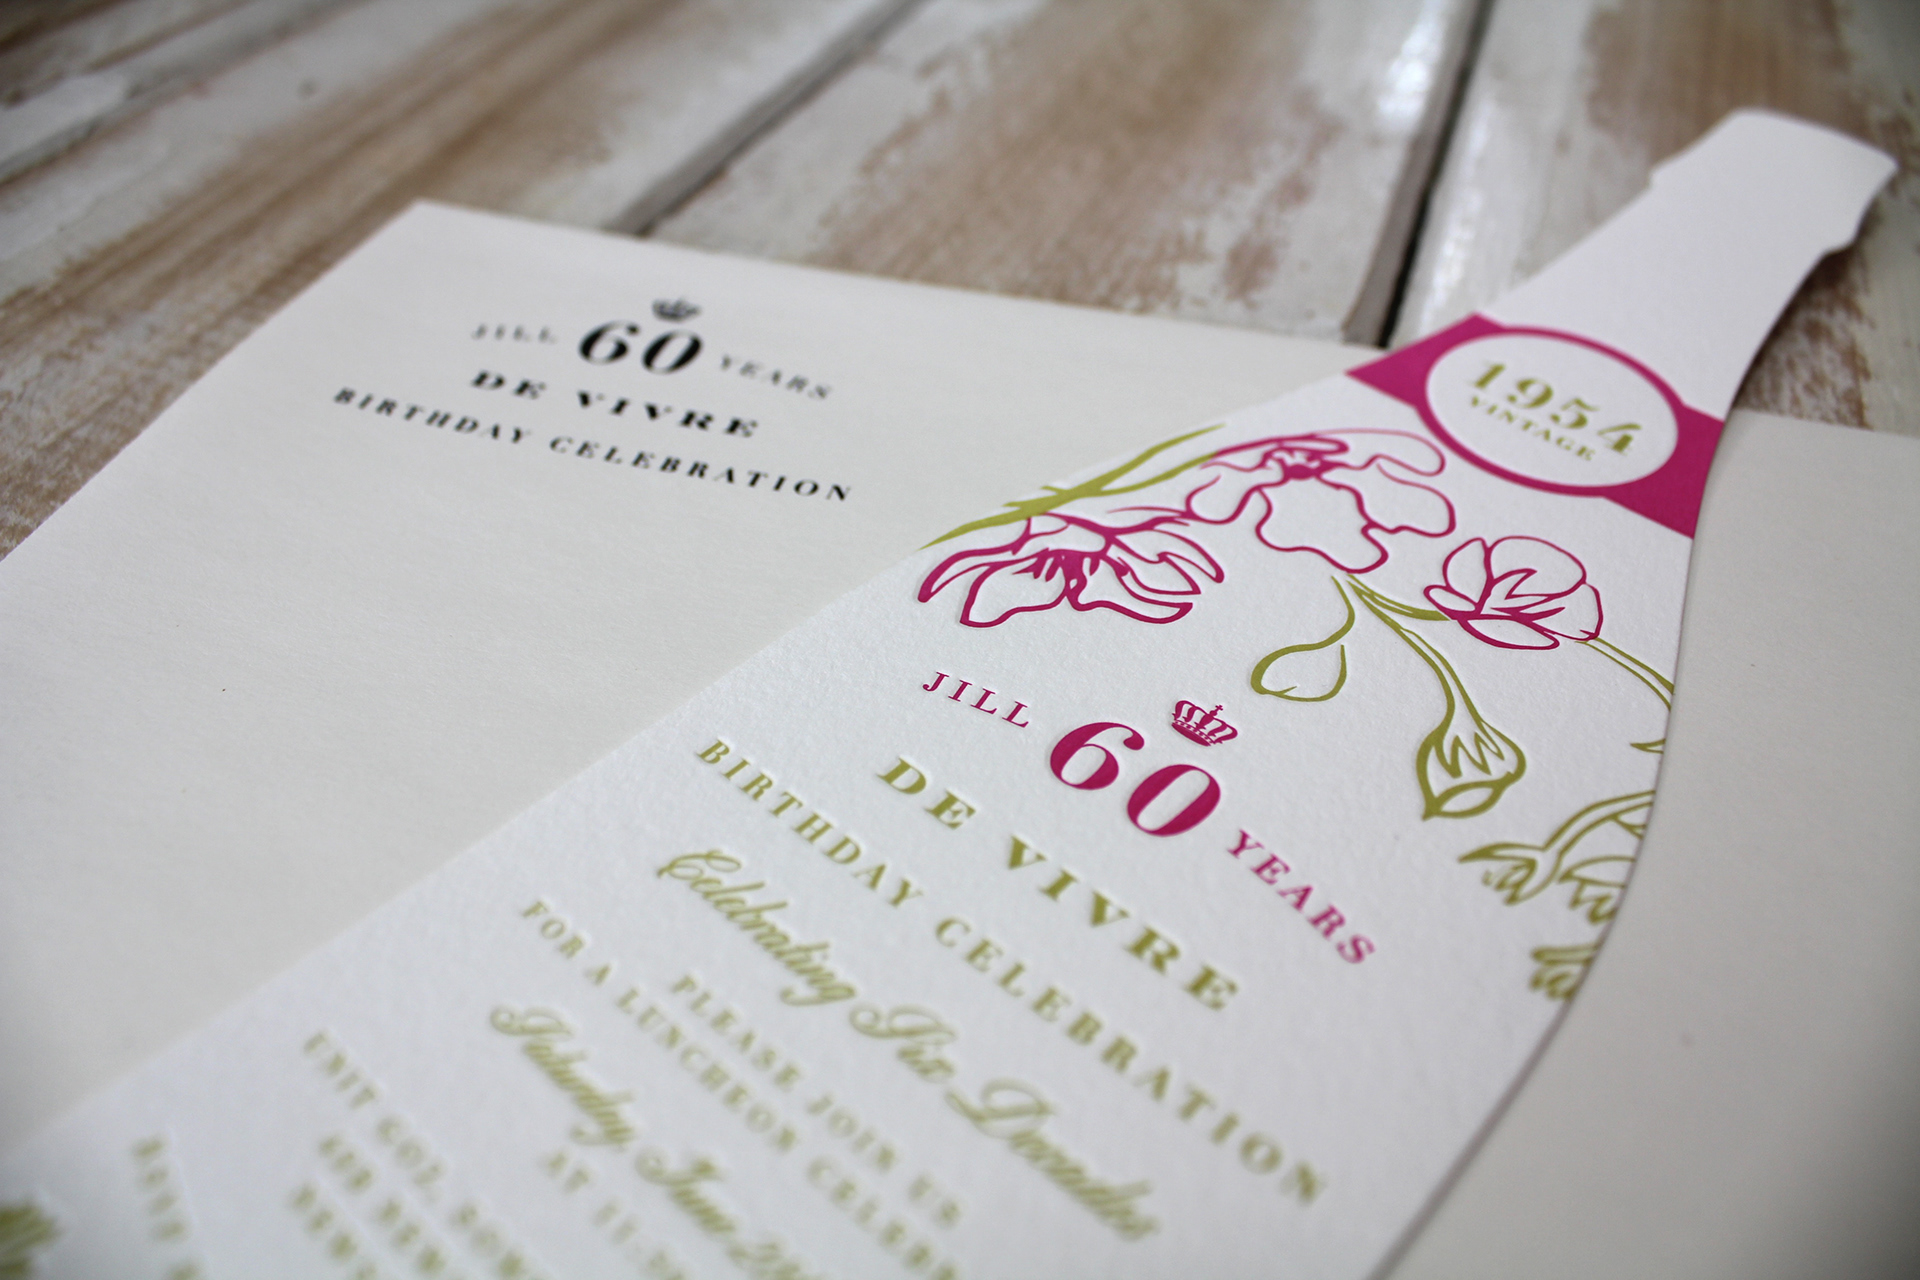 Georgia mather jill loane birthday invitation two colour letterpress birthday invitation designed for client designed under the direction of little peach co studio filmwisefo Images